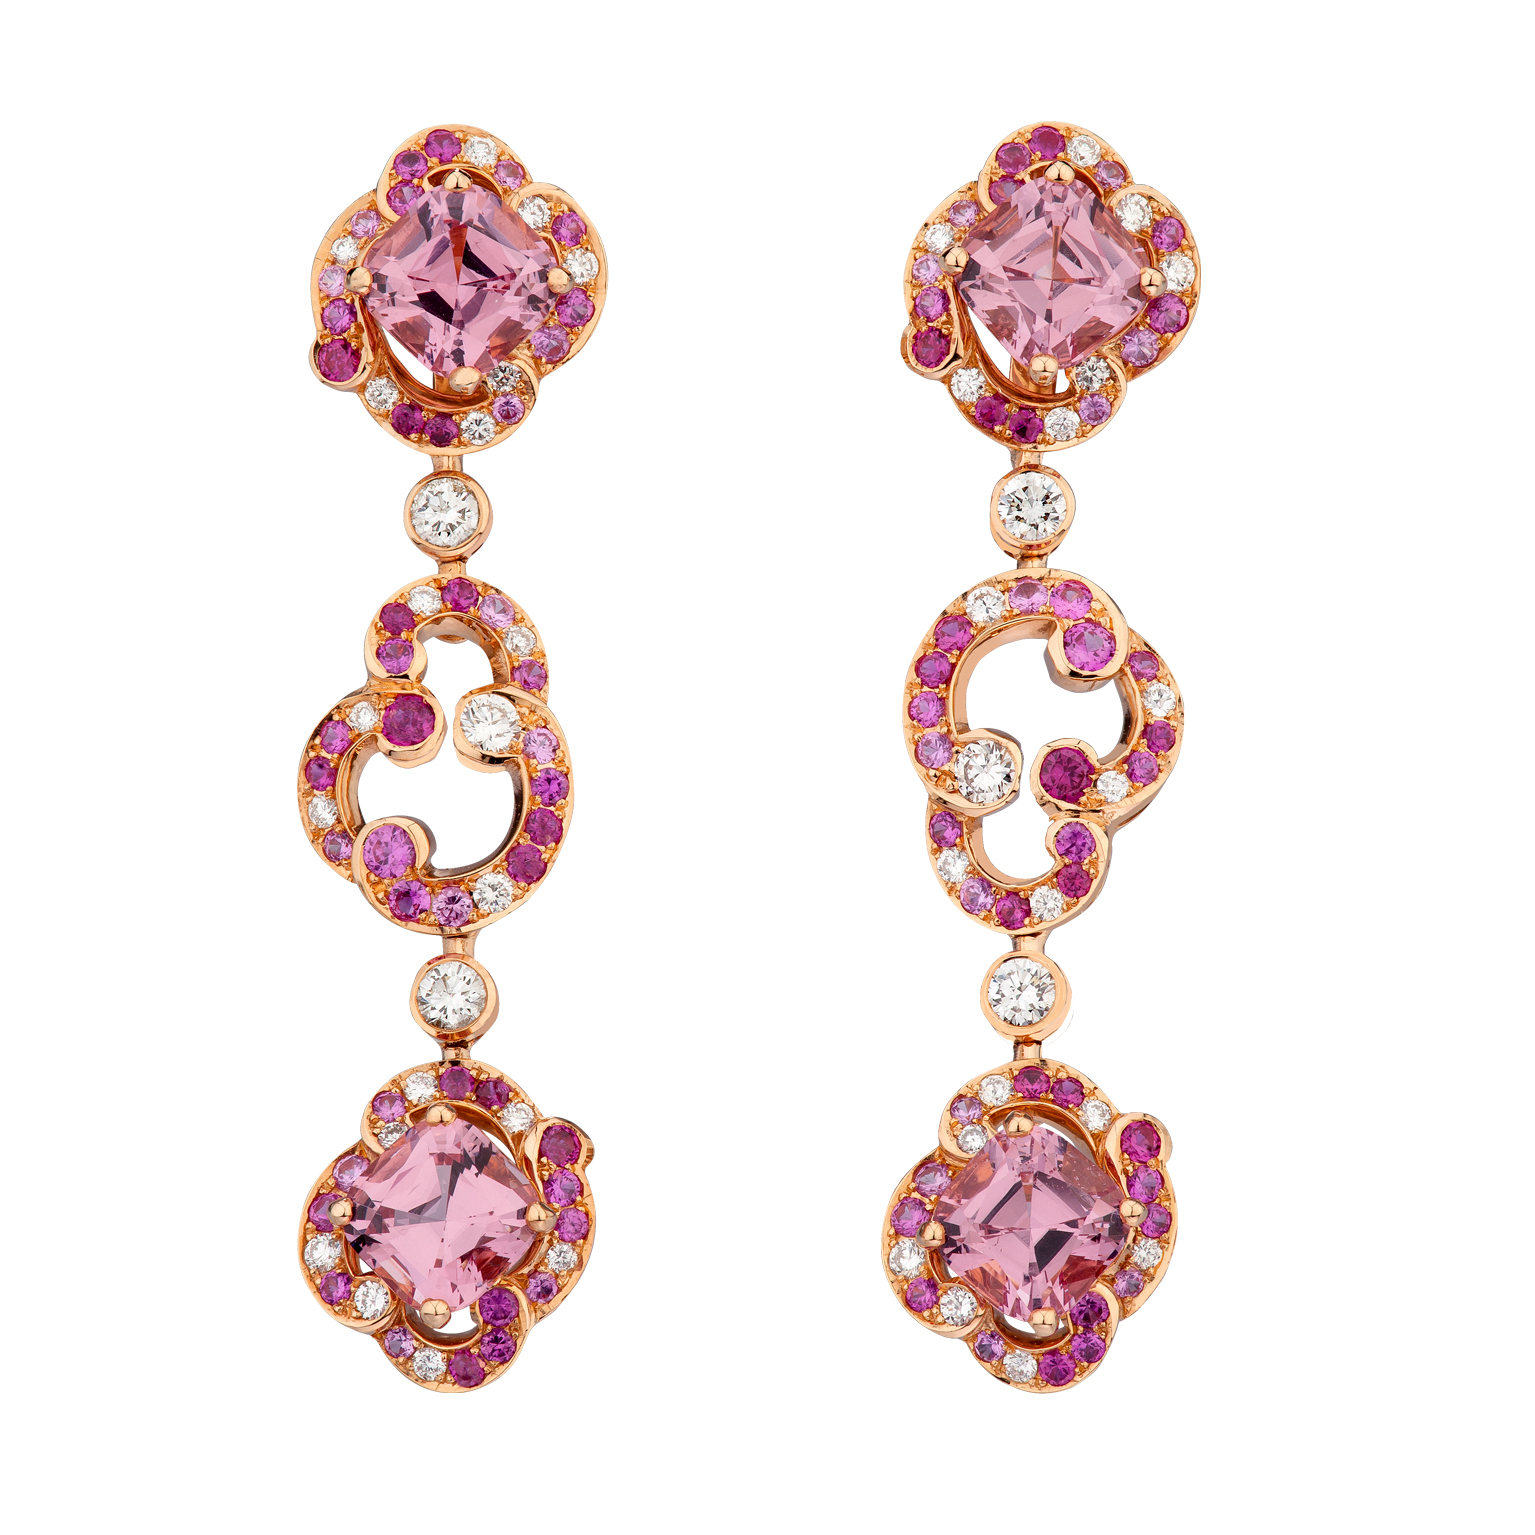 SPINEL-Fabergé-Rococo-Pink-Spinel-Long-Earrings